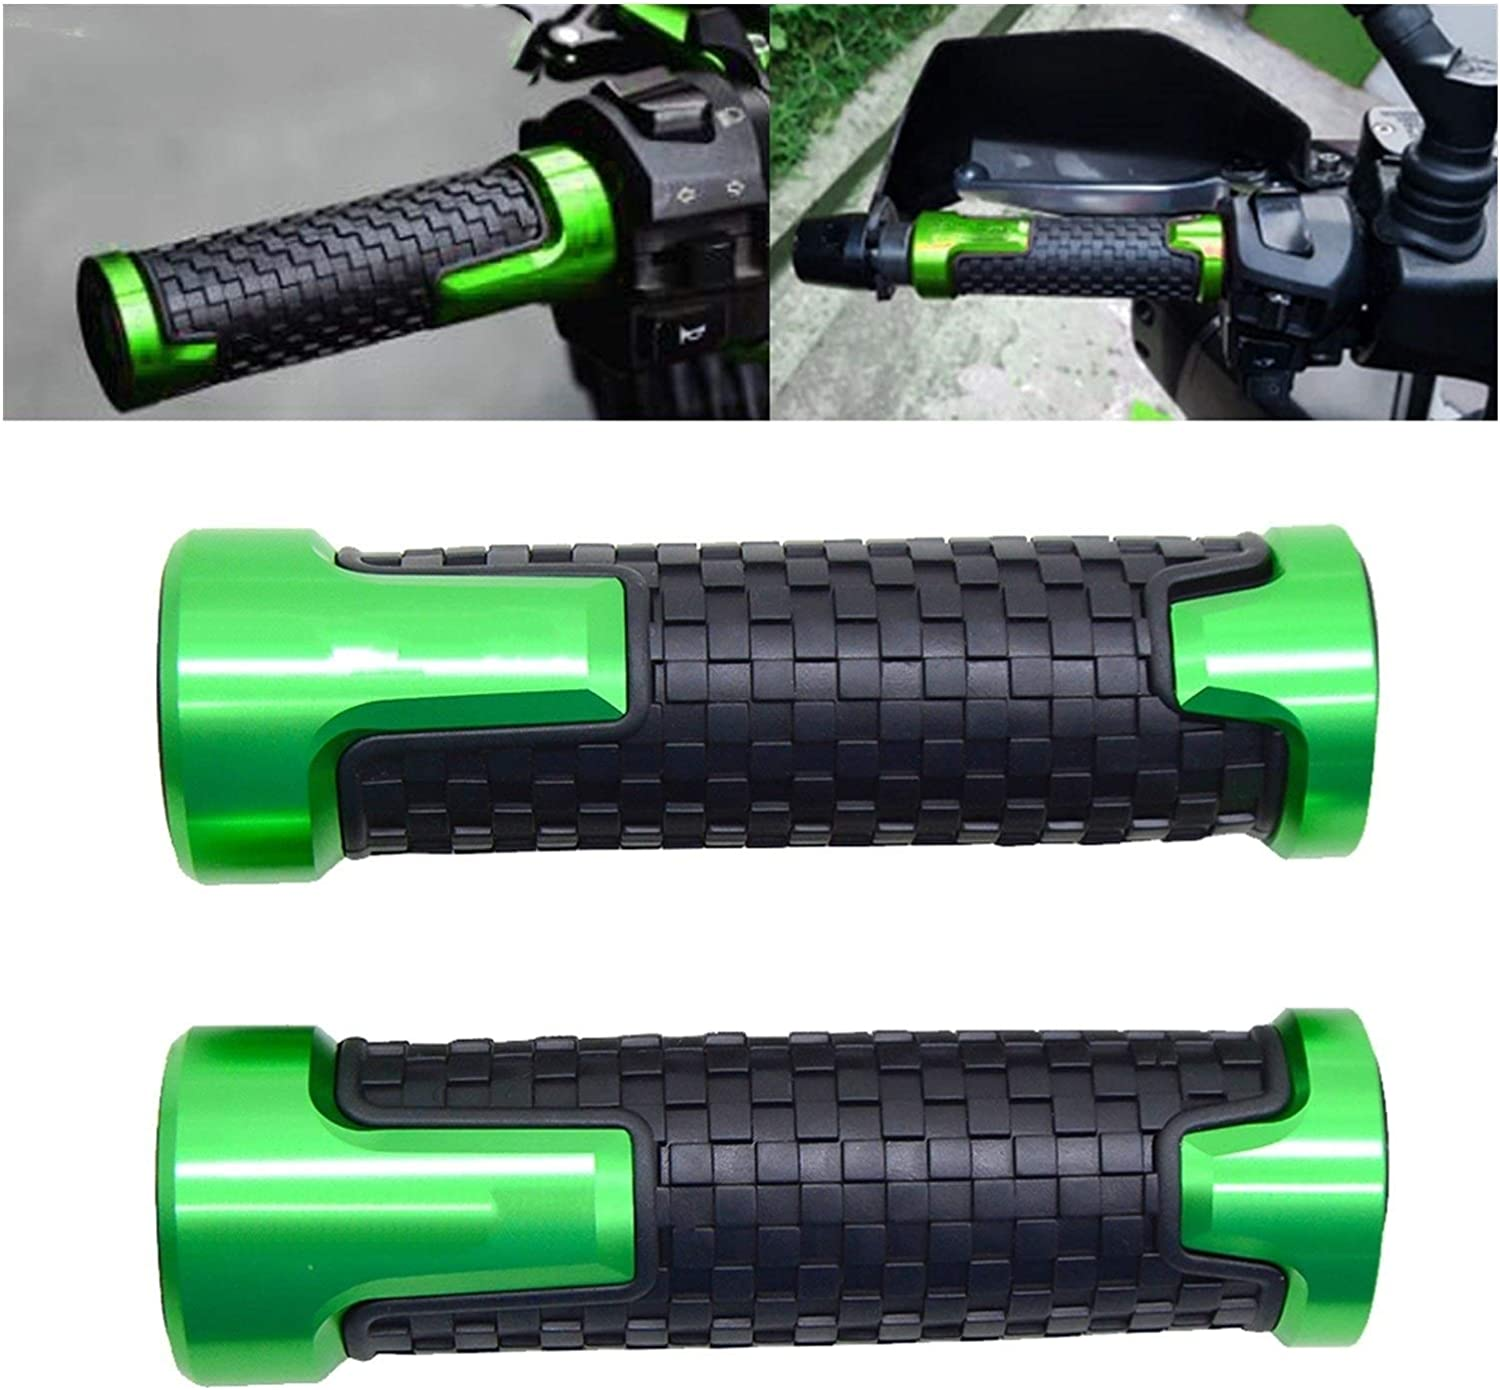 Motorcycle Grips Sacramento Mall For Mail order SUZUKI GSF 250 BANDIT 600 600S 1250 Mo 1200